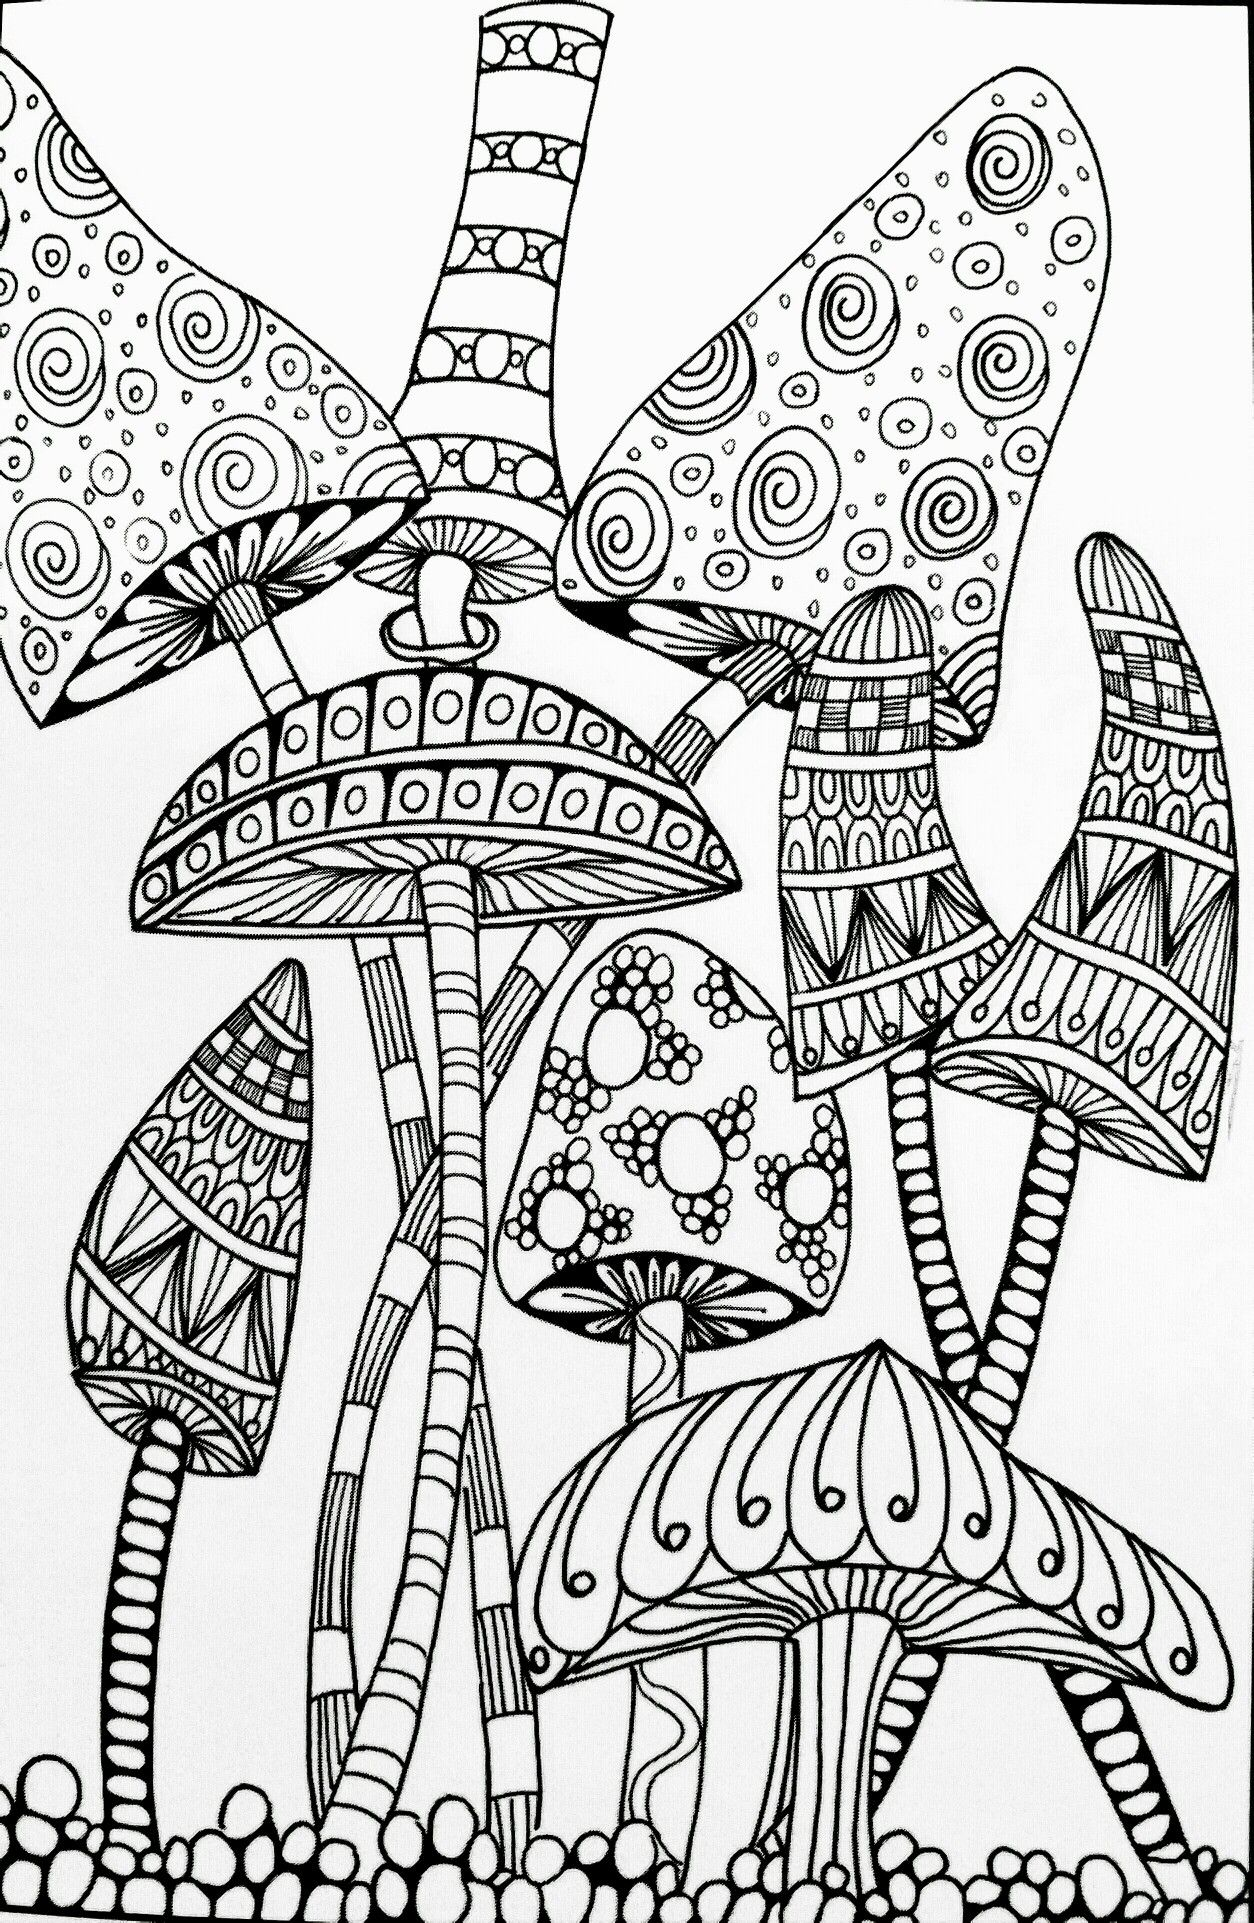 Trippy Mushroom Coloring Pages Free Mandala Coloring Pages